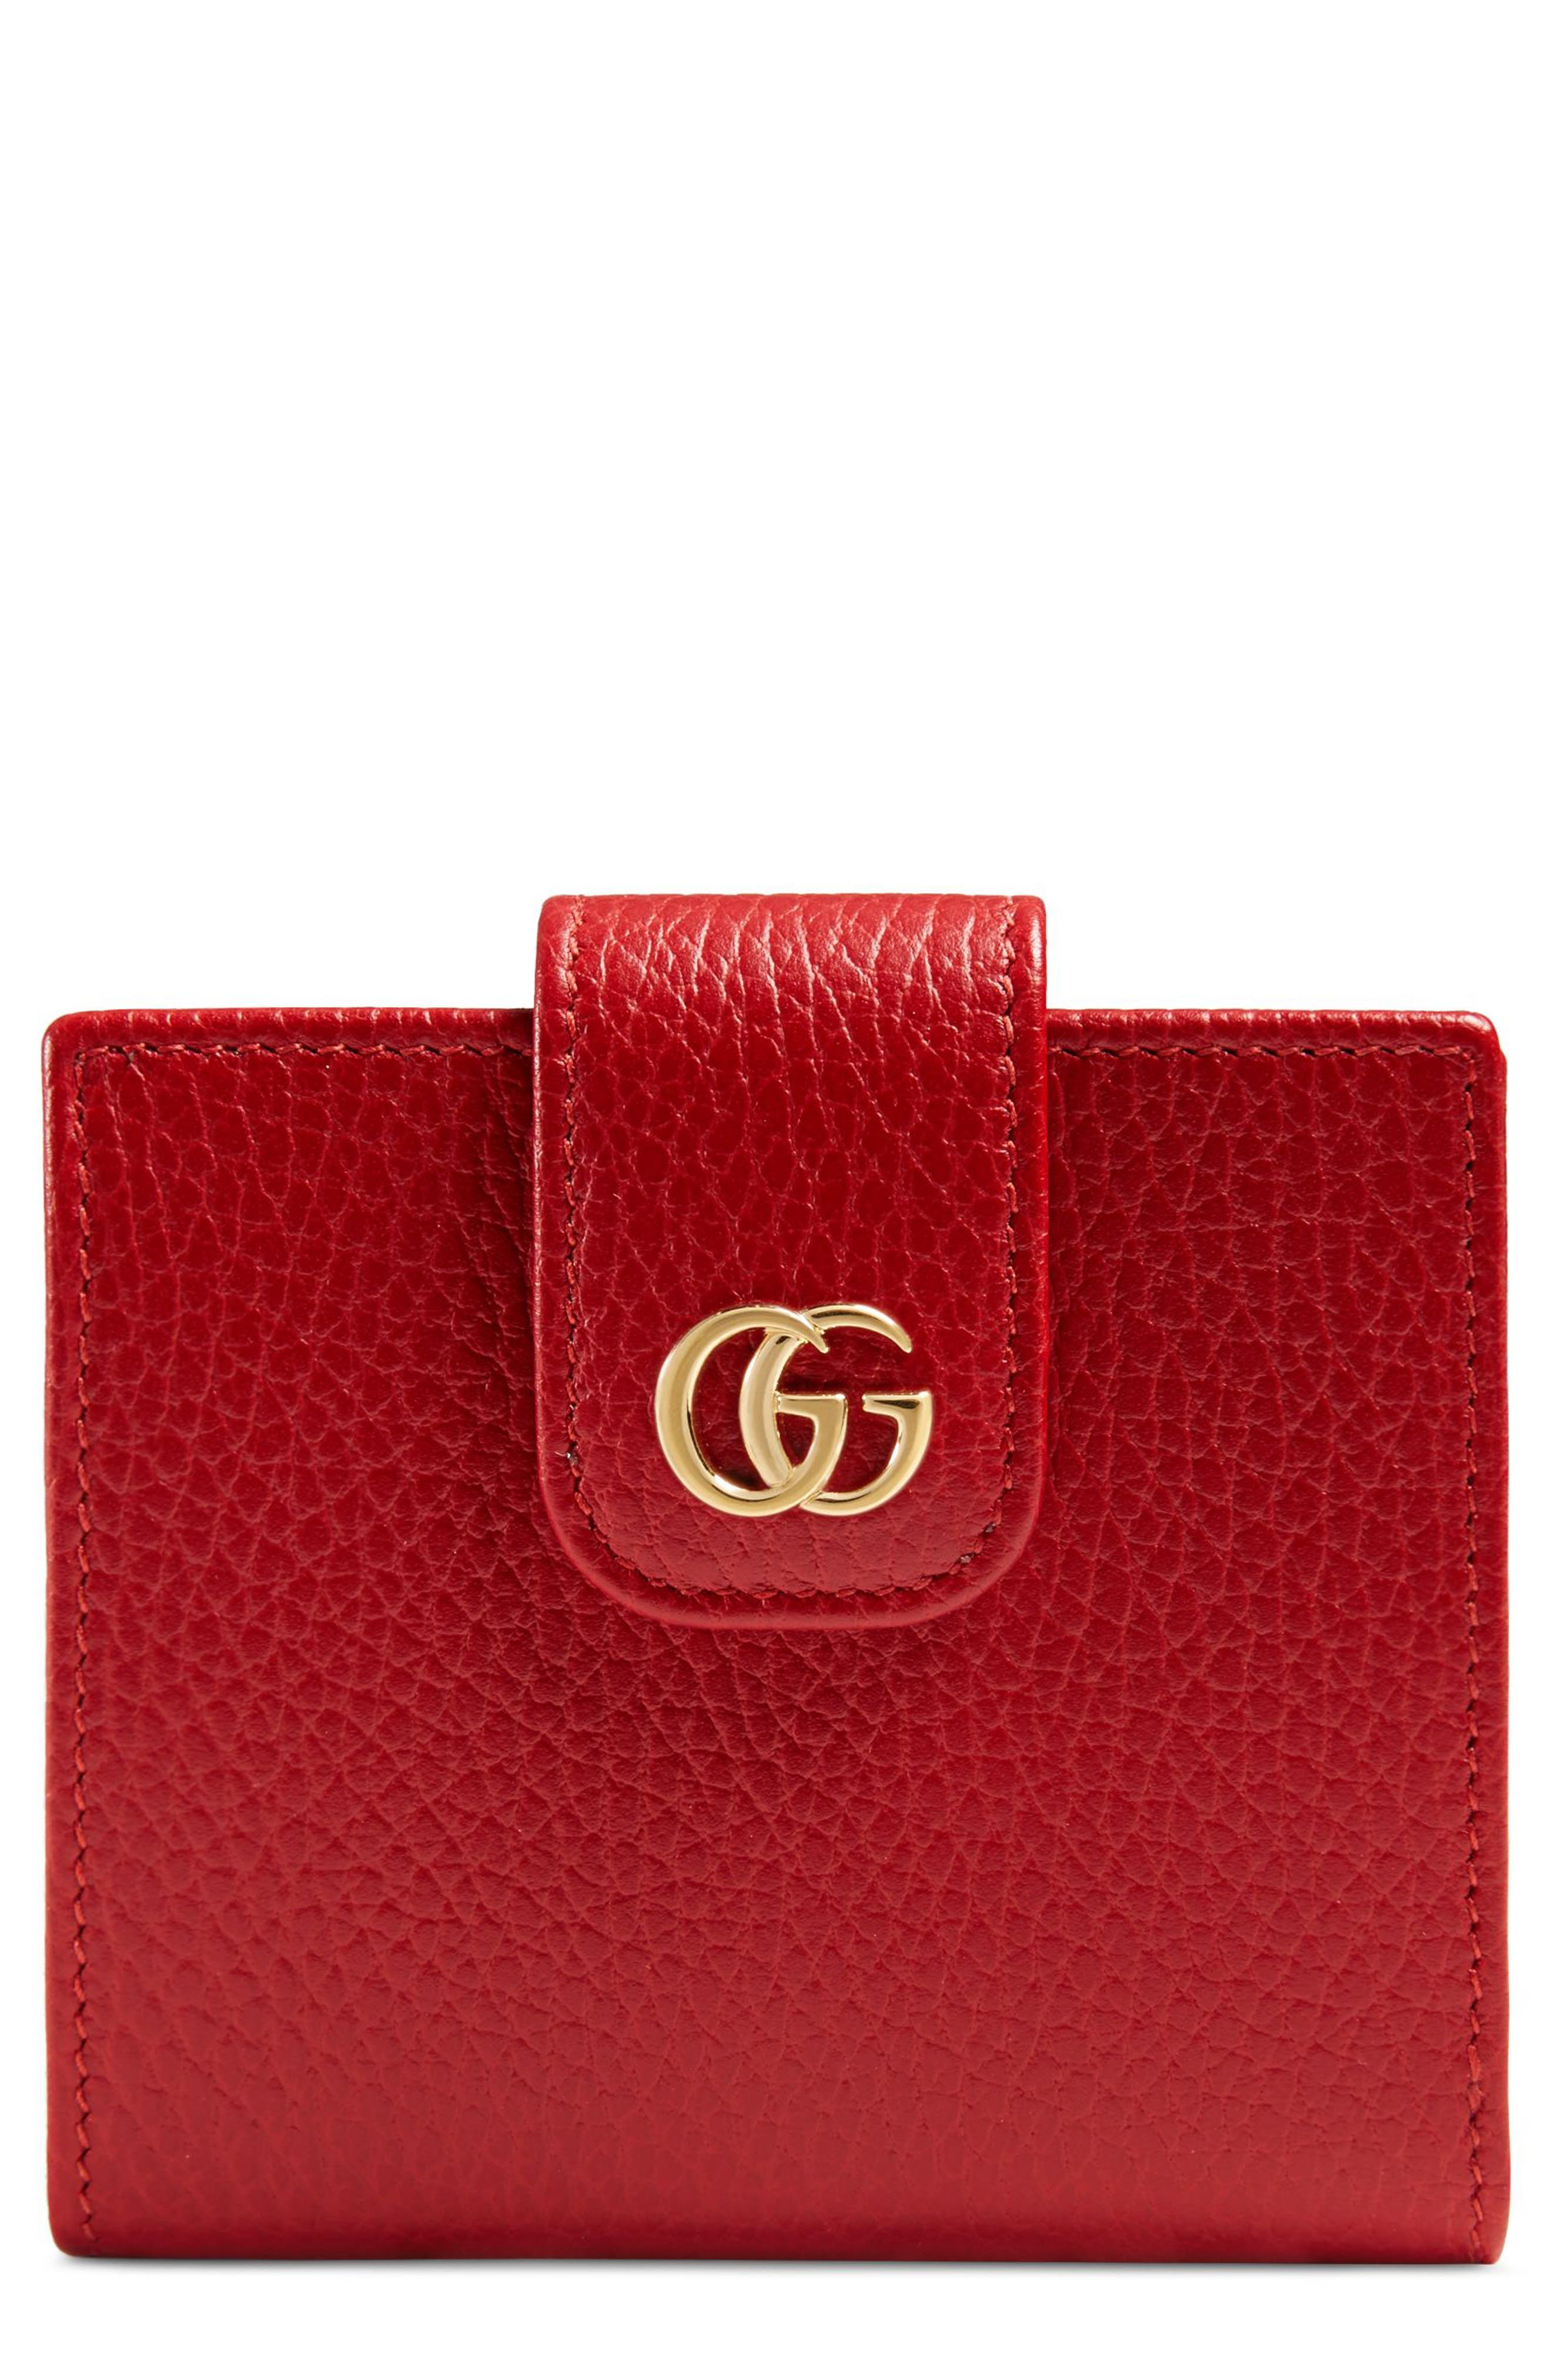 French Wallets Wallets & Card Cases for Women